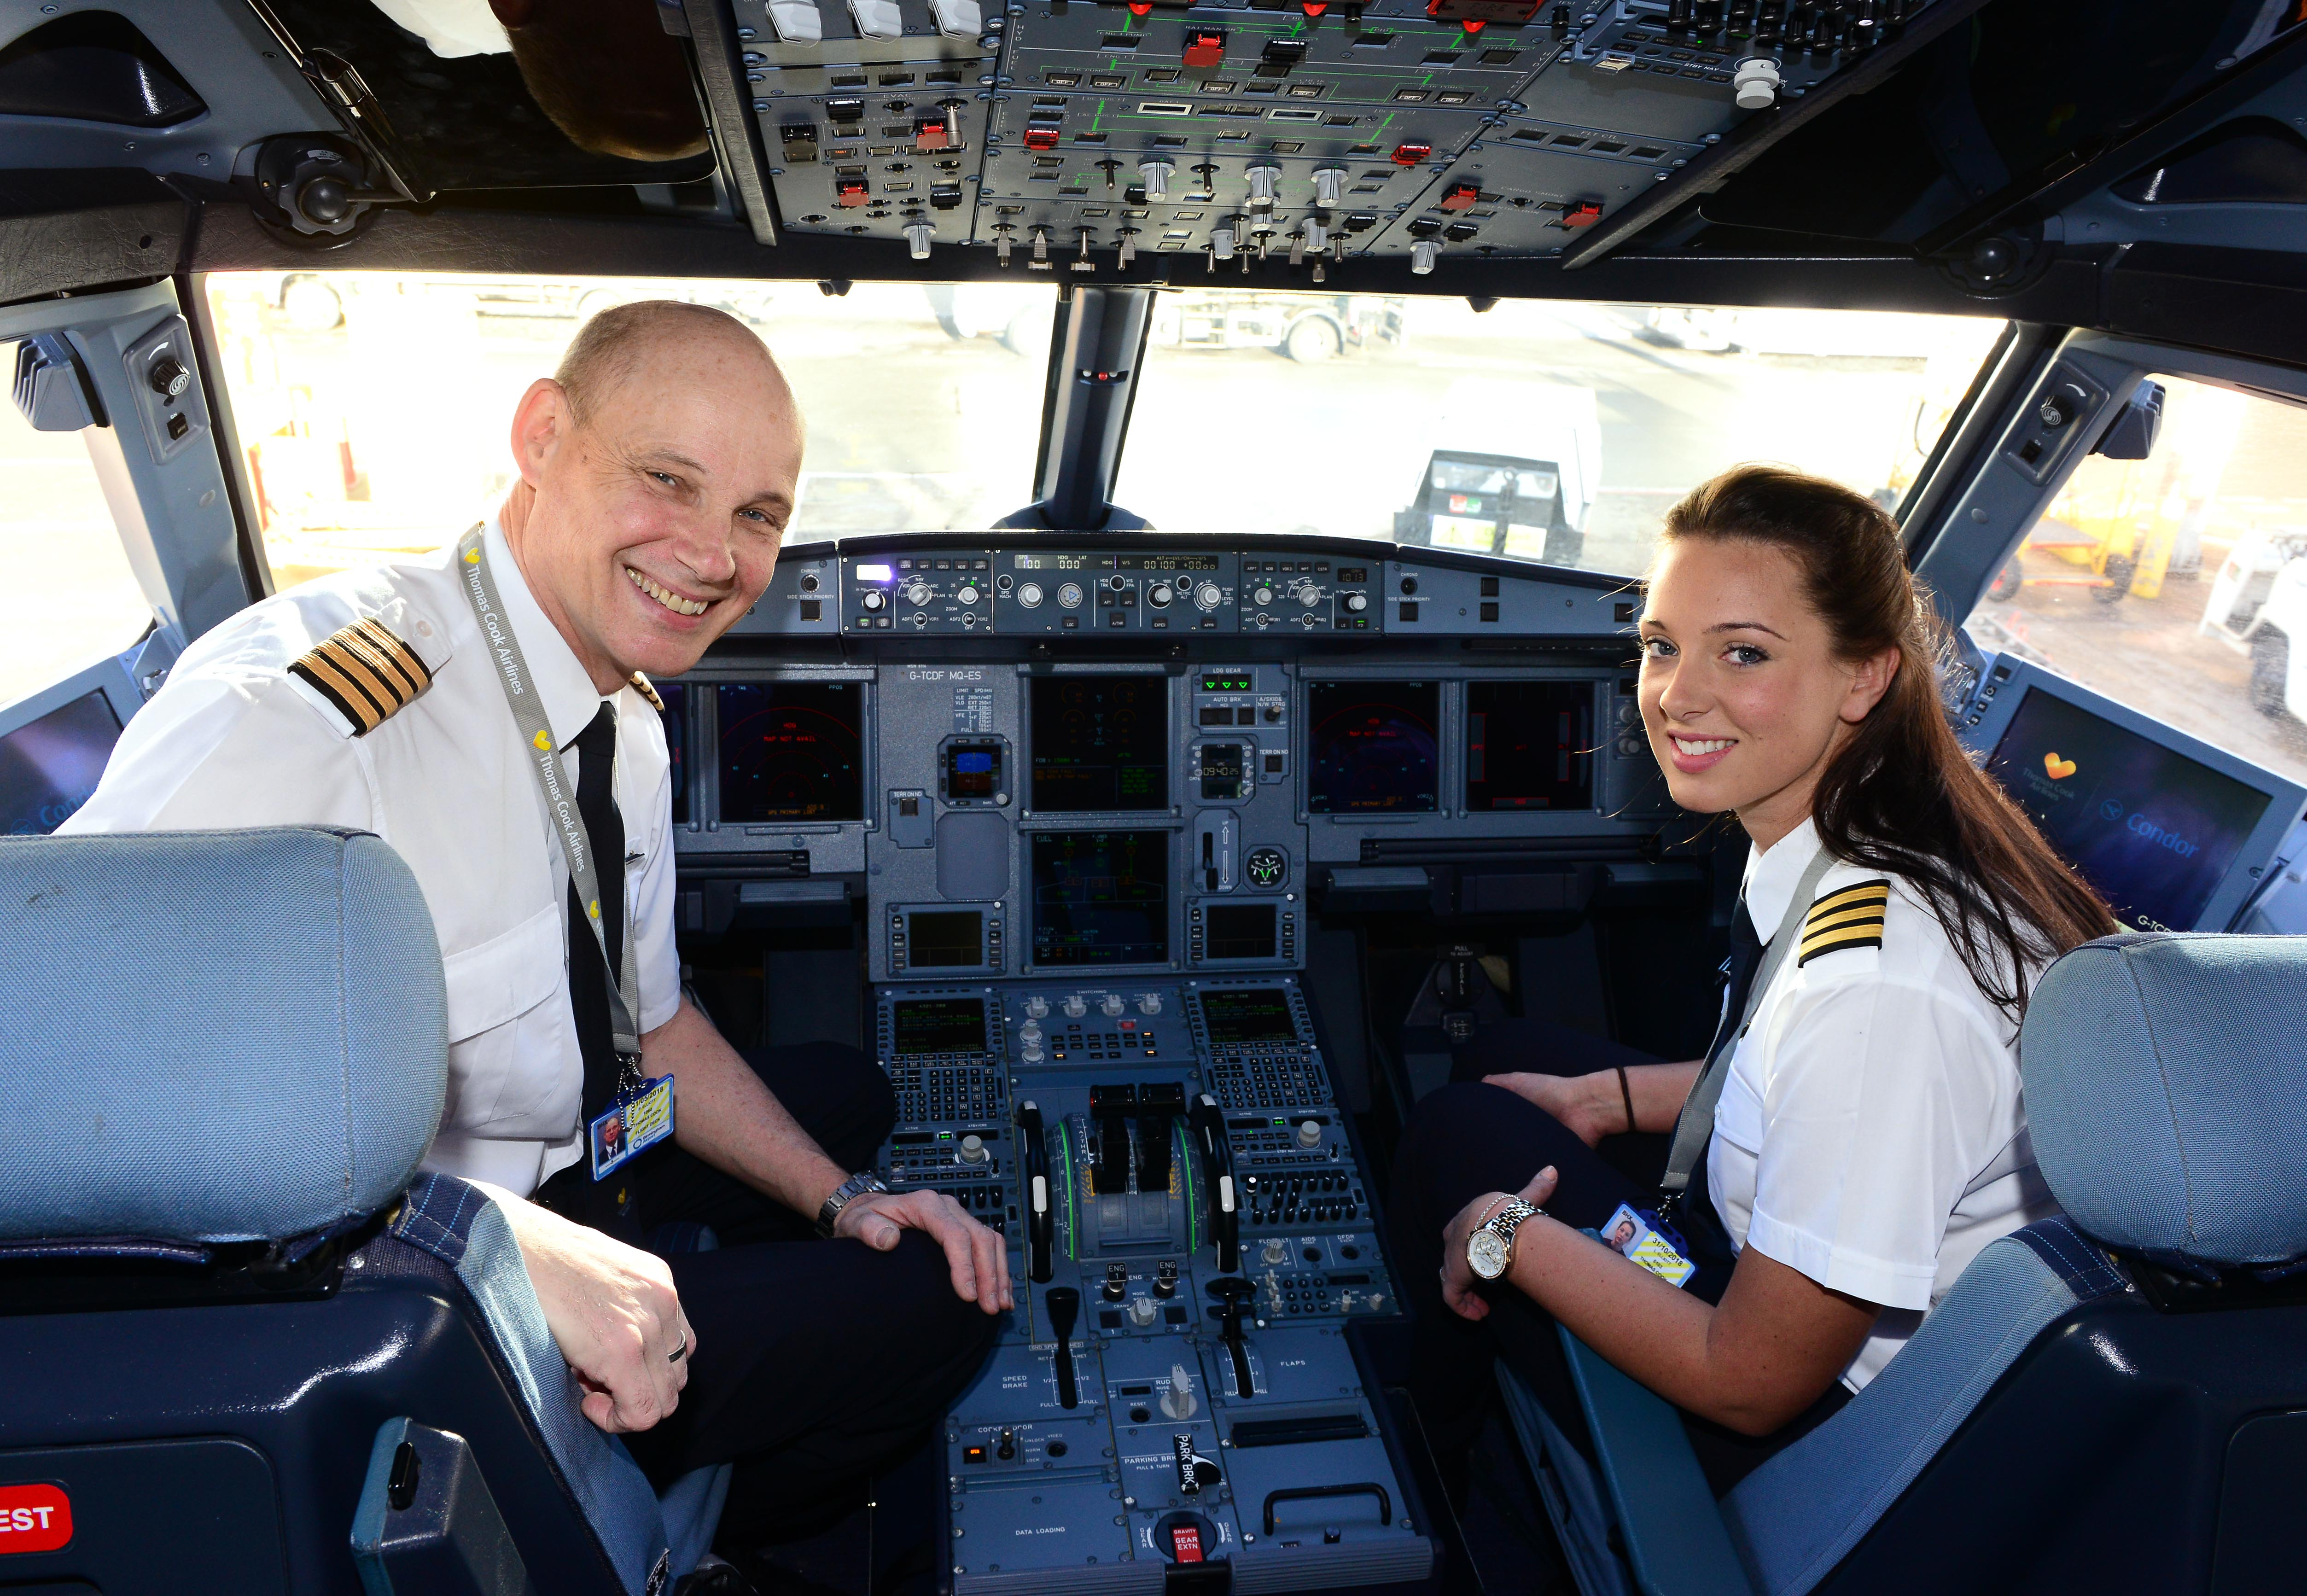 Father Daughter Pilot Team Fly Together For The First Time